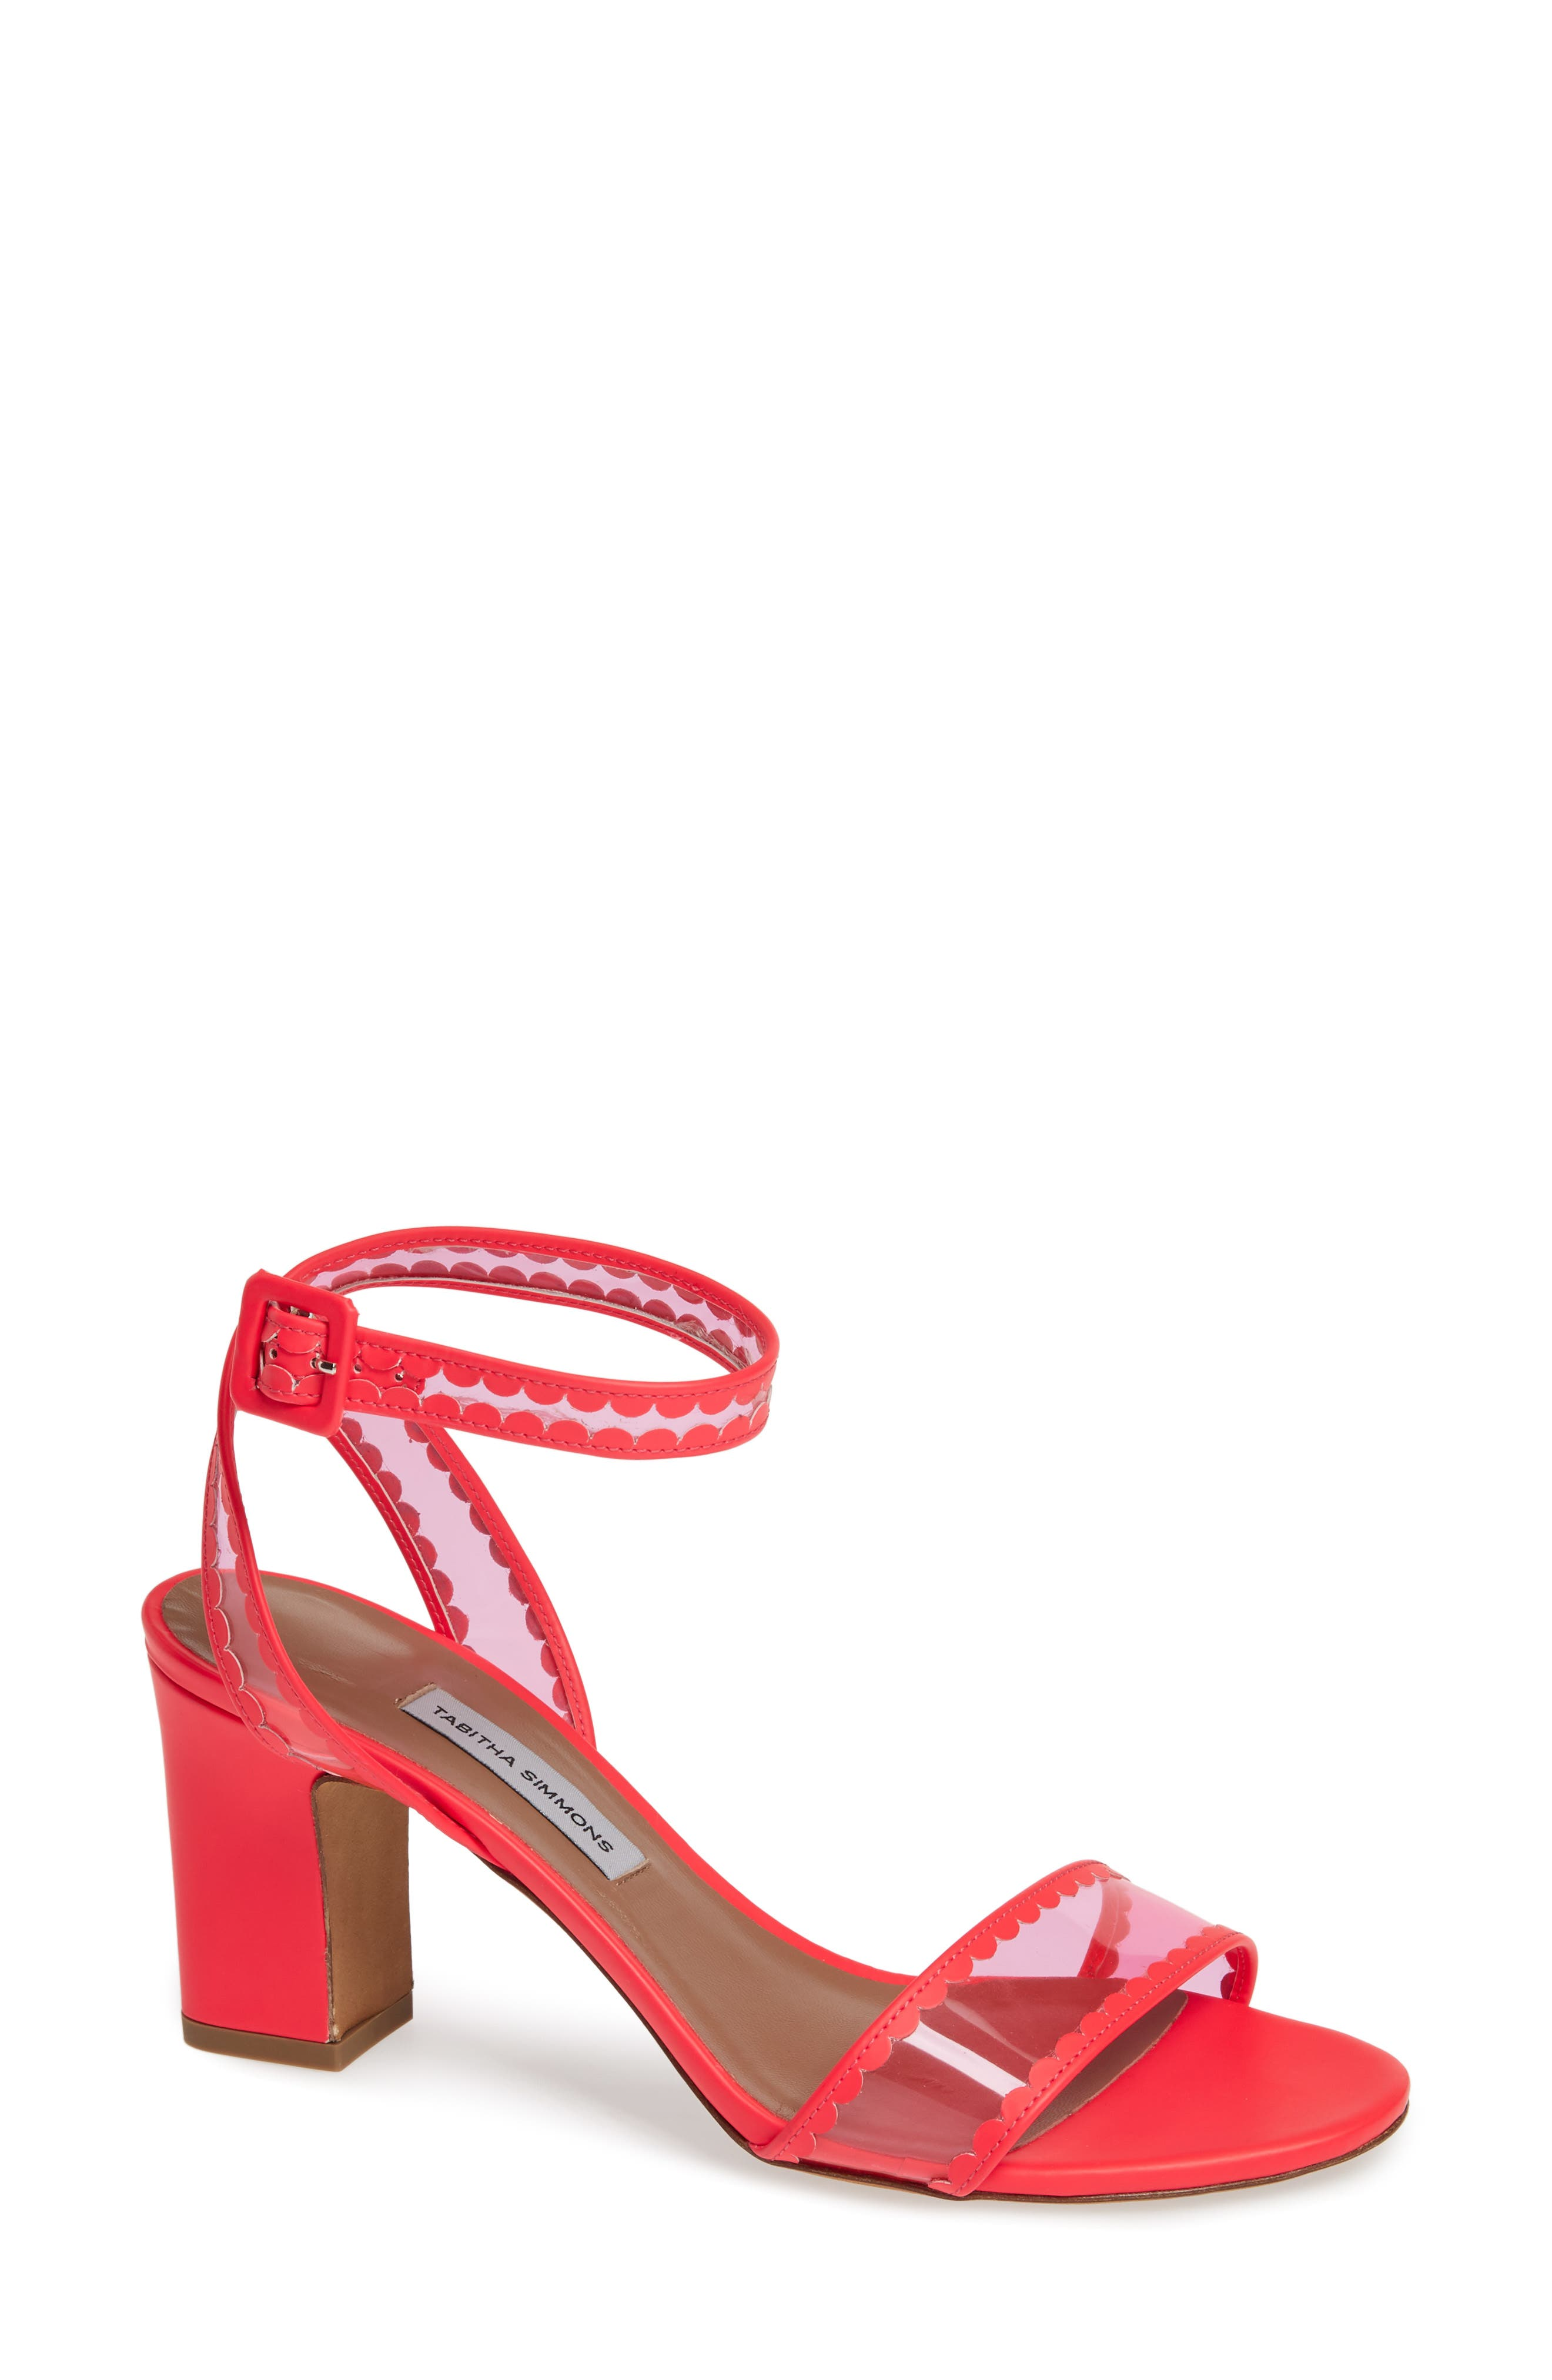 Tabitha Simmons Leticia Clear Ankle Strap Sandal, Pink